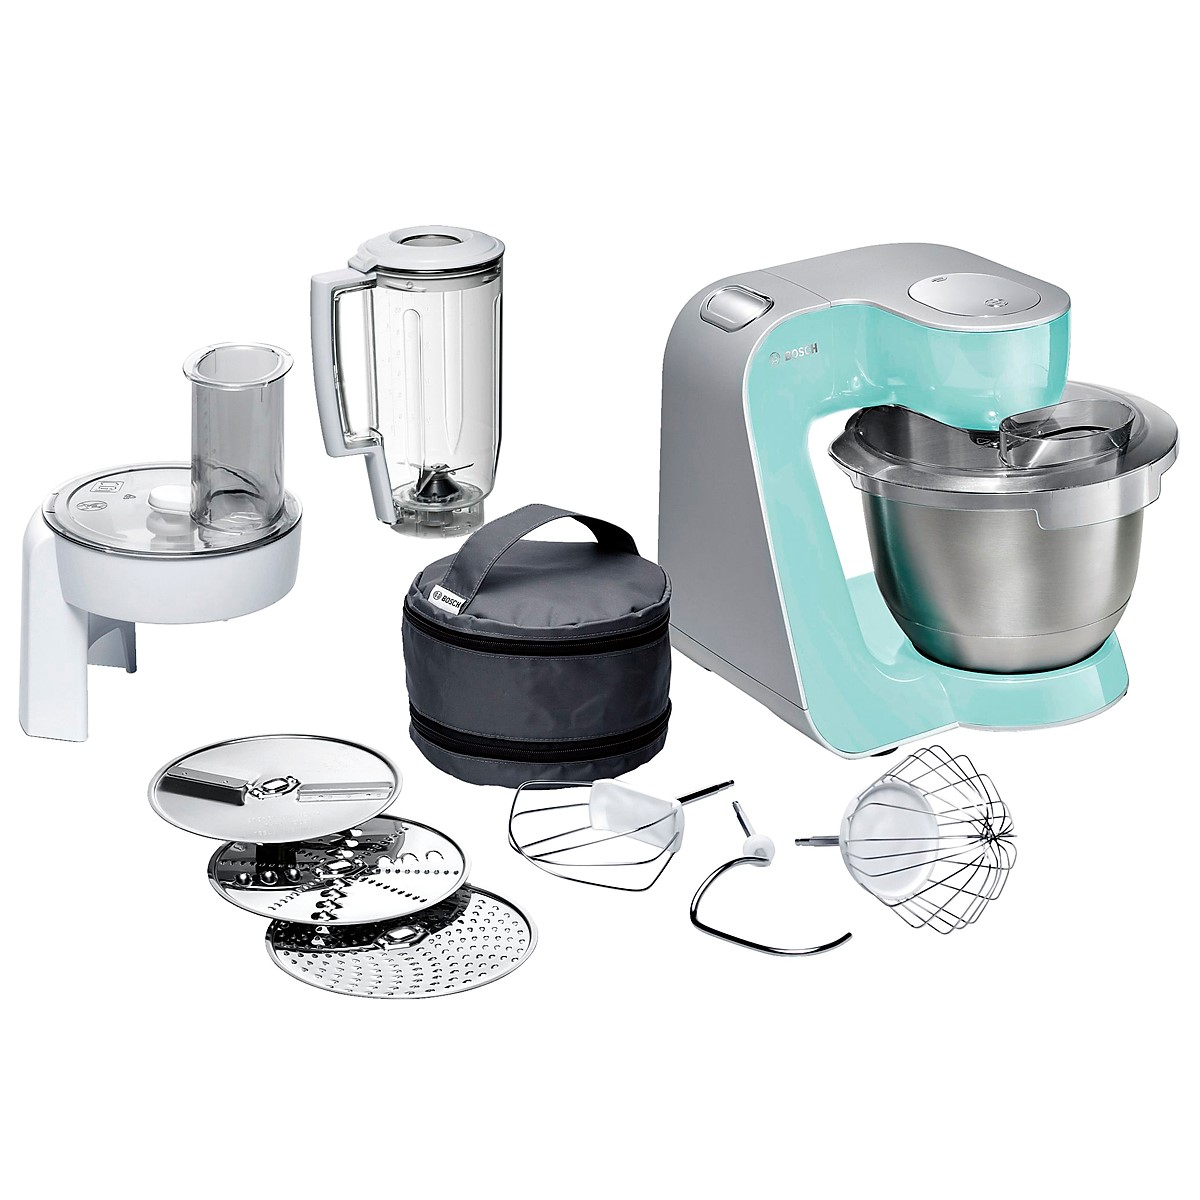 Bosch - Kitchen Machine MUM5 Styline Colour Mint 4